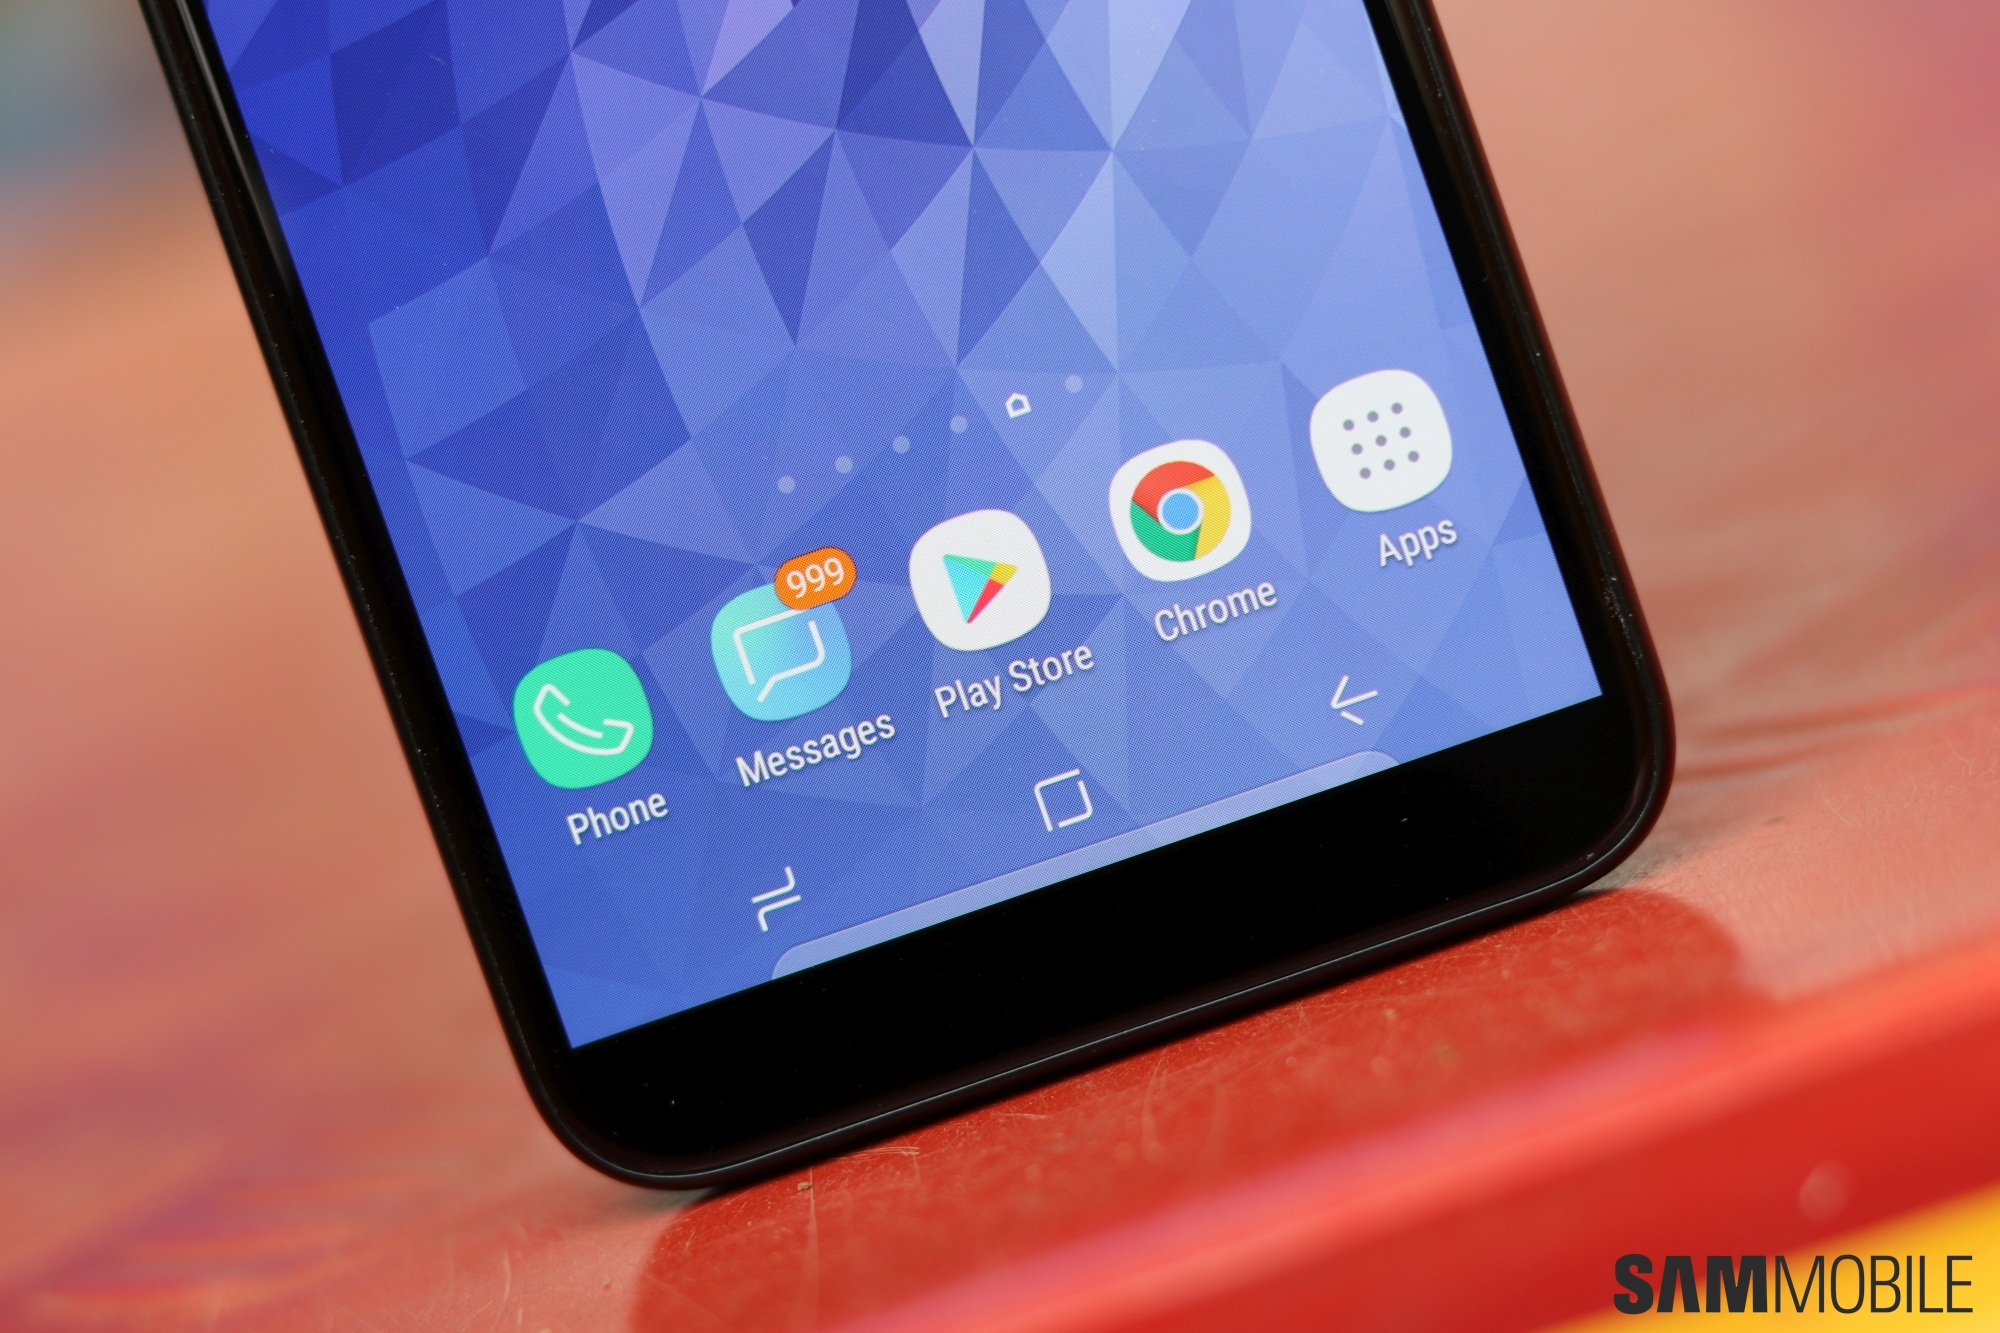 Samsung Galaxy J6 hands-on: To Infinity and beyond? - Free Apps